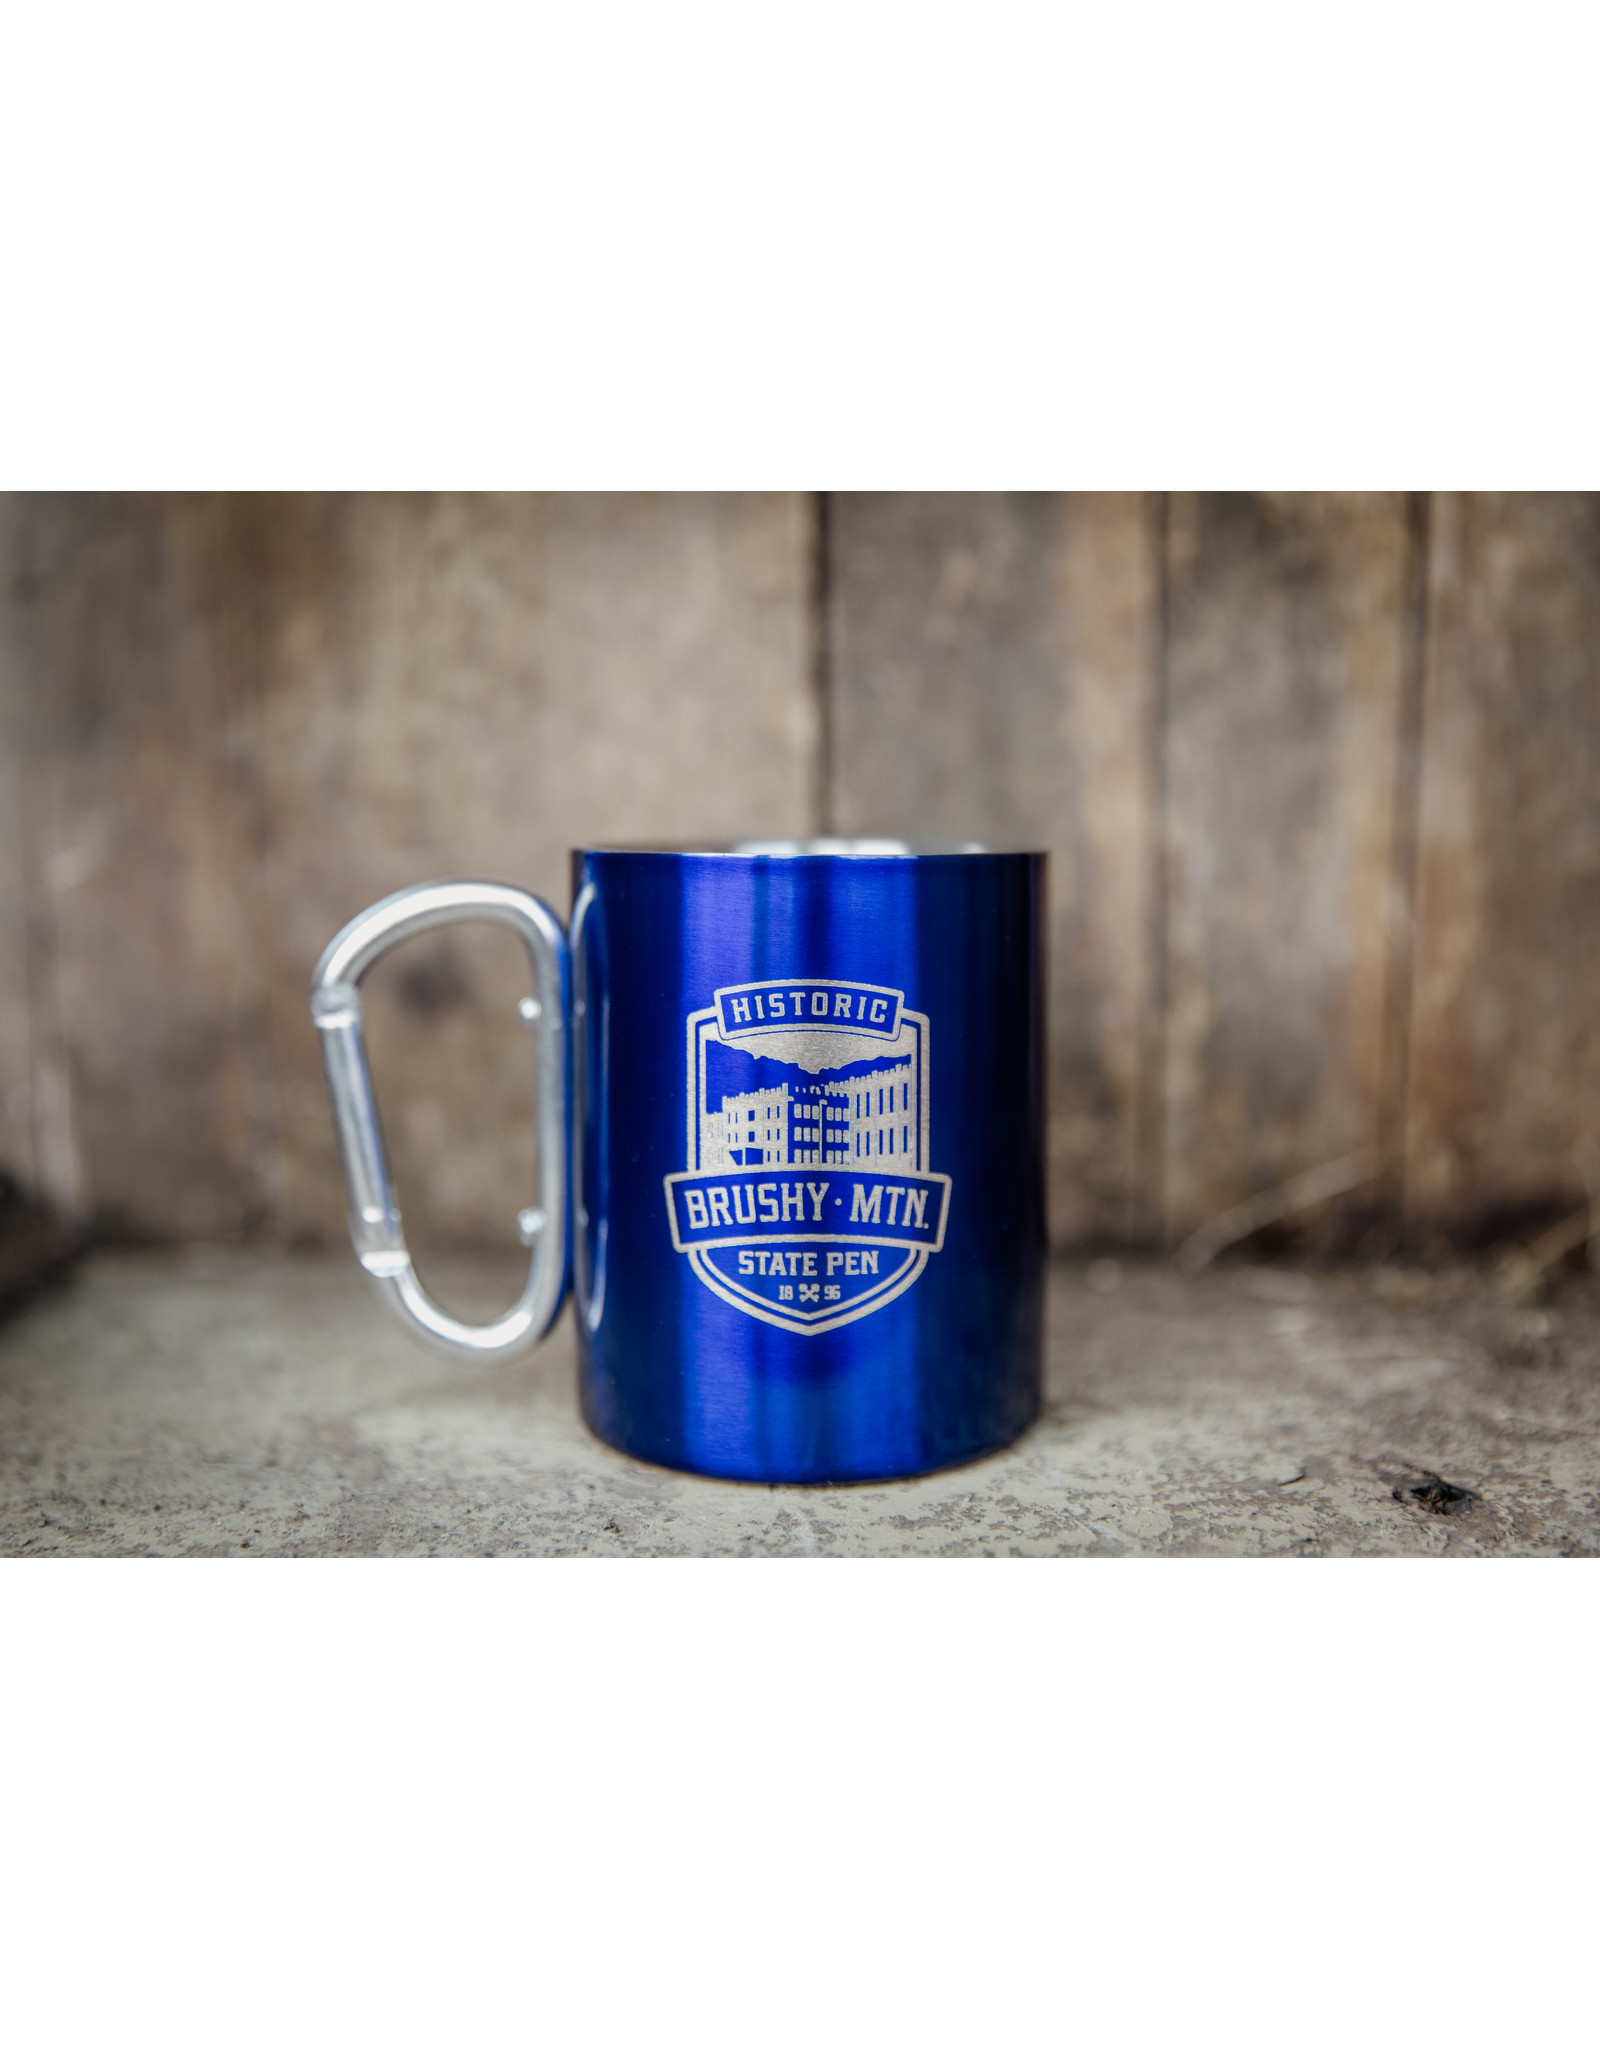 10 oz Carabiner Handle Travel Mug